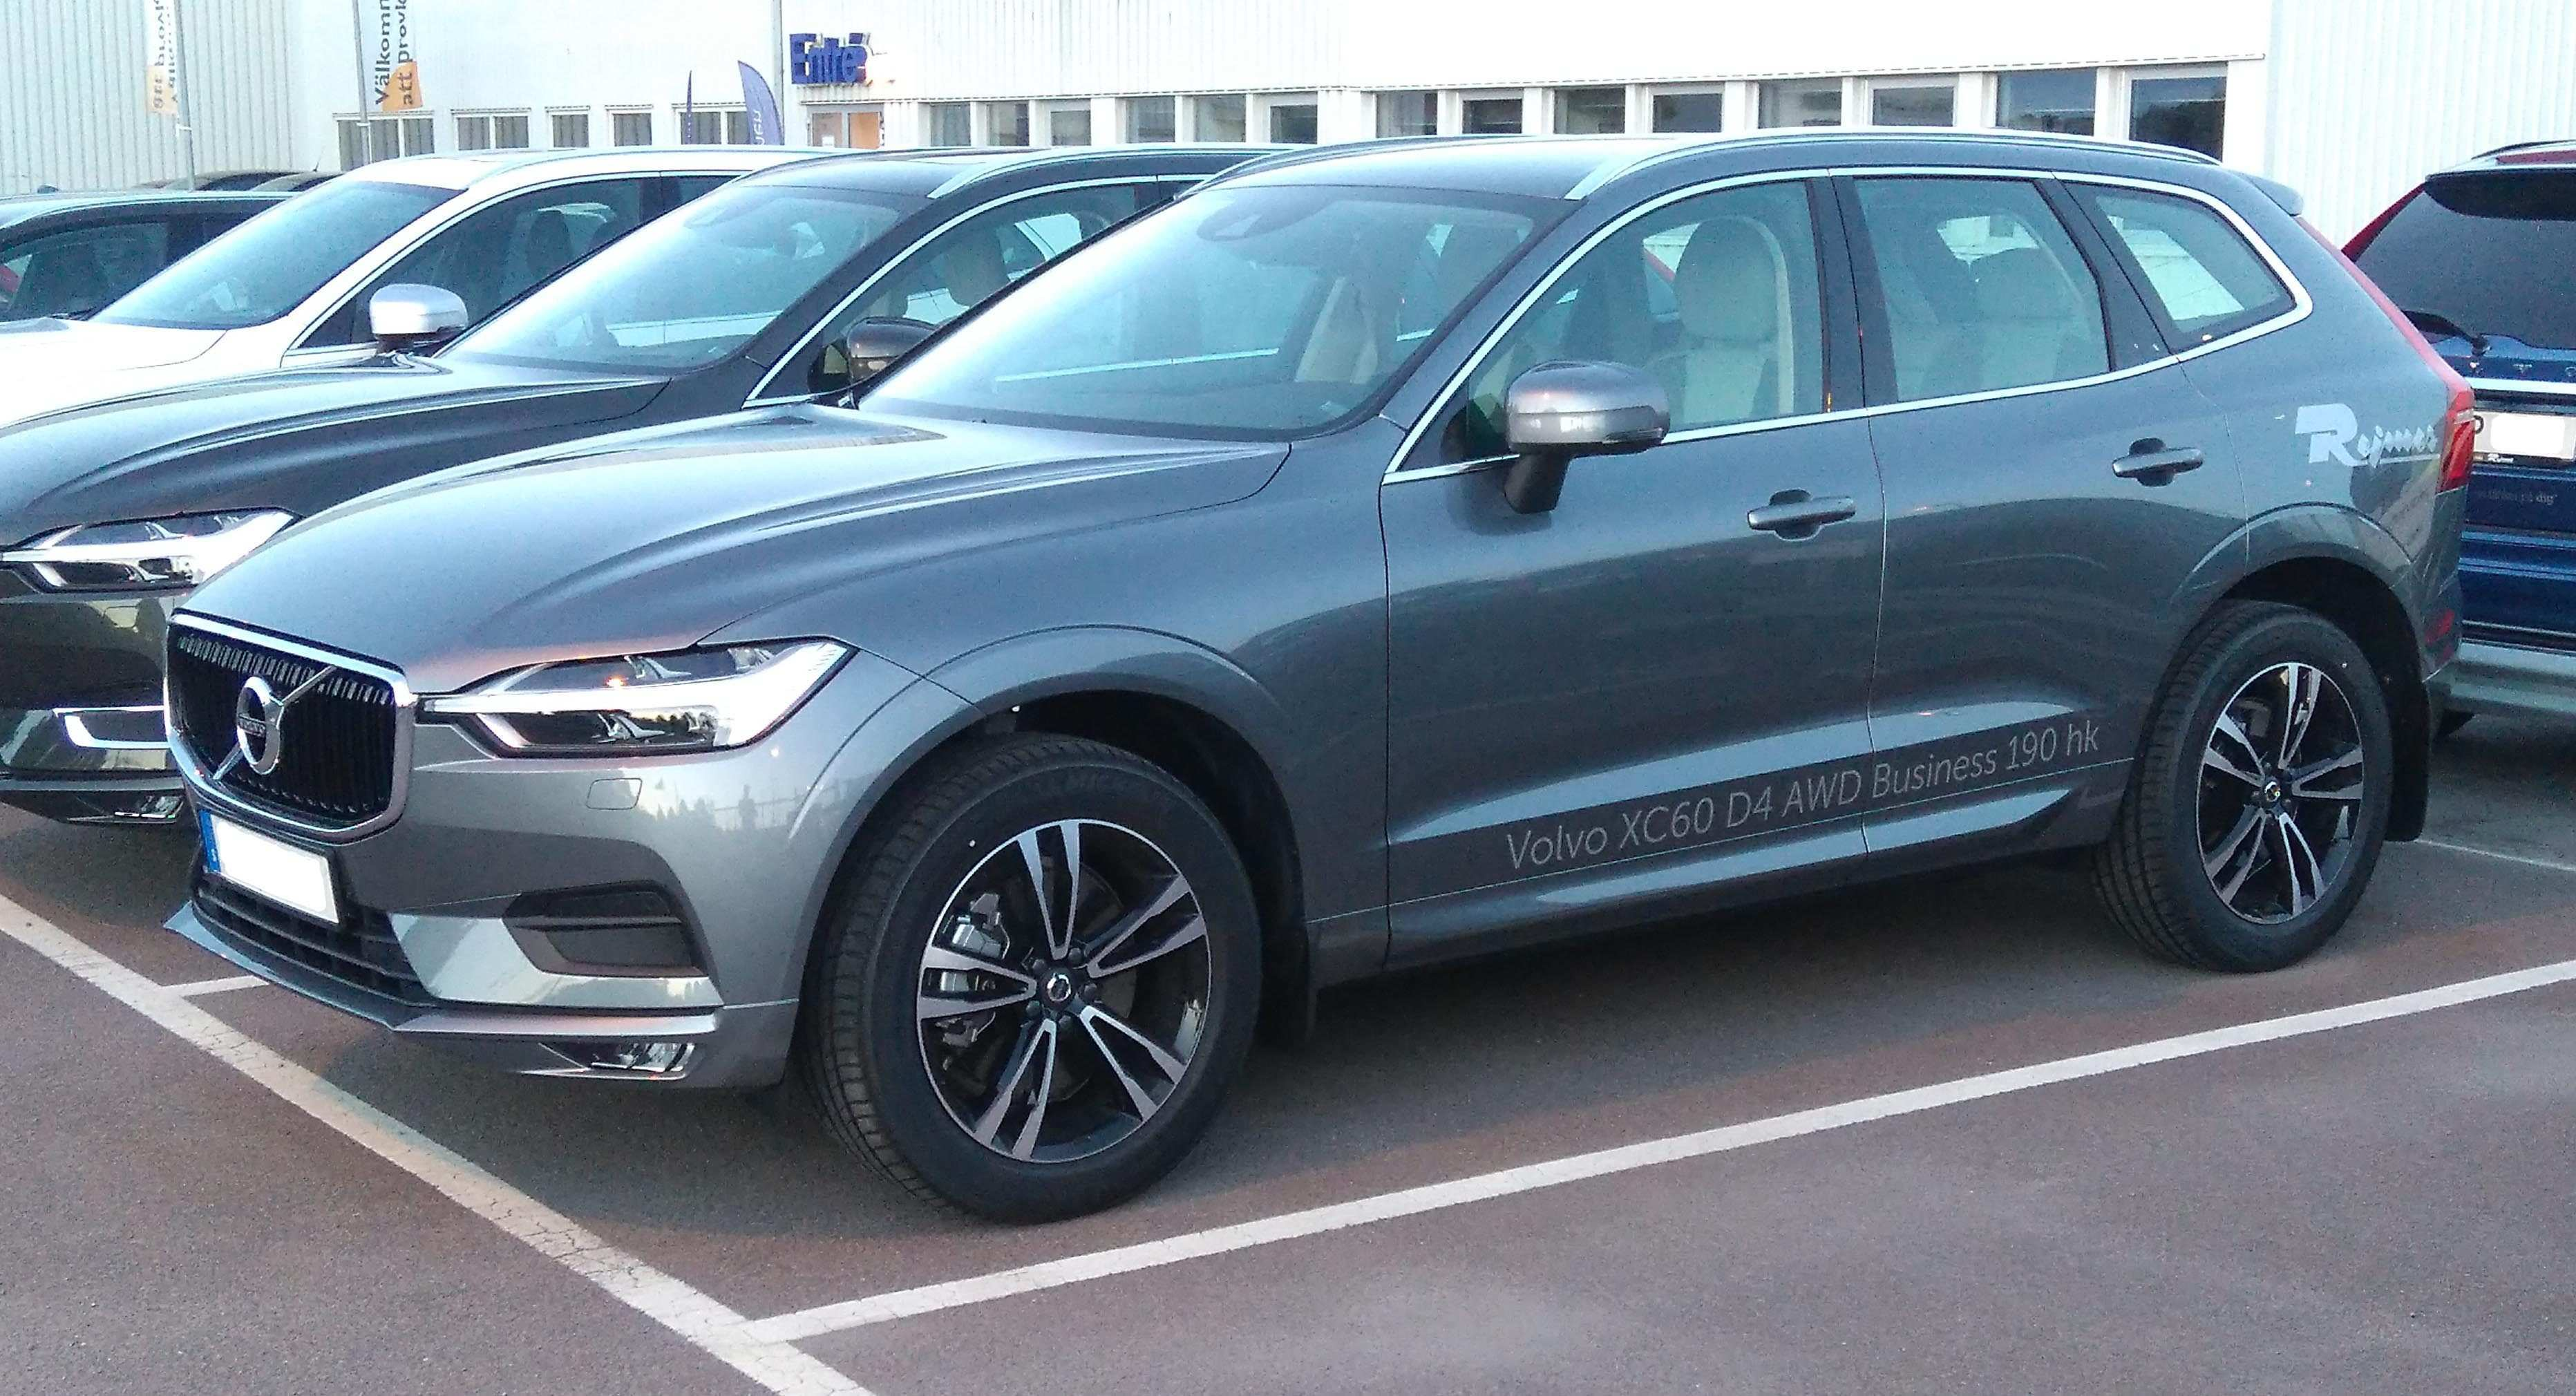 63 New 2020 Volvo XC60 Concept for 2020 Volvo XC60